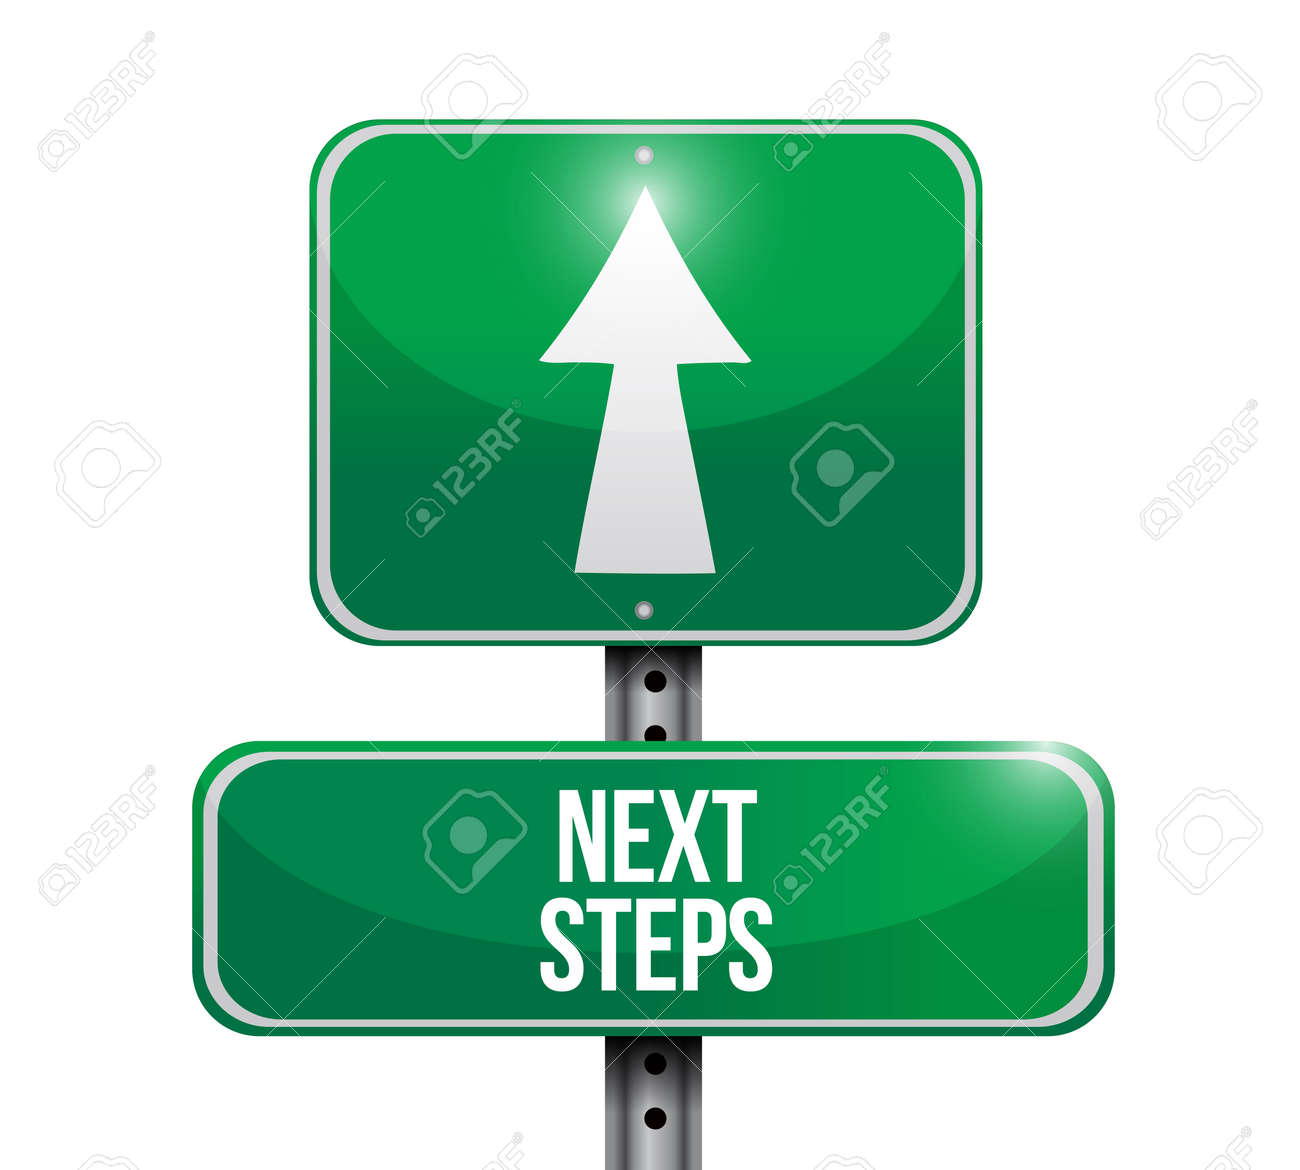 Next steps sign icon Stock Vector - 99407755